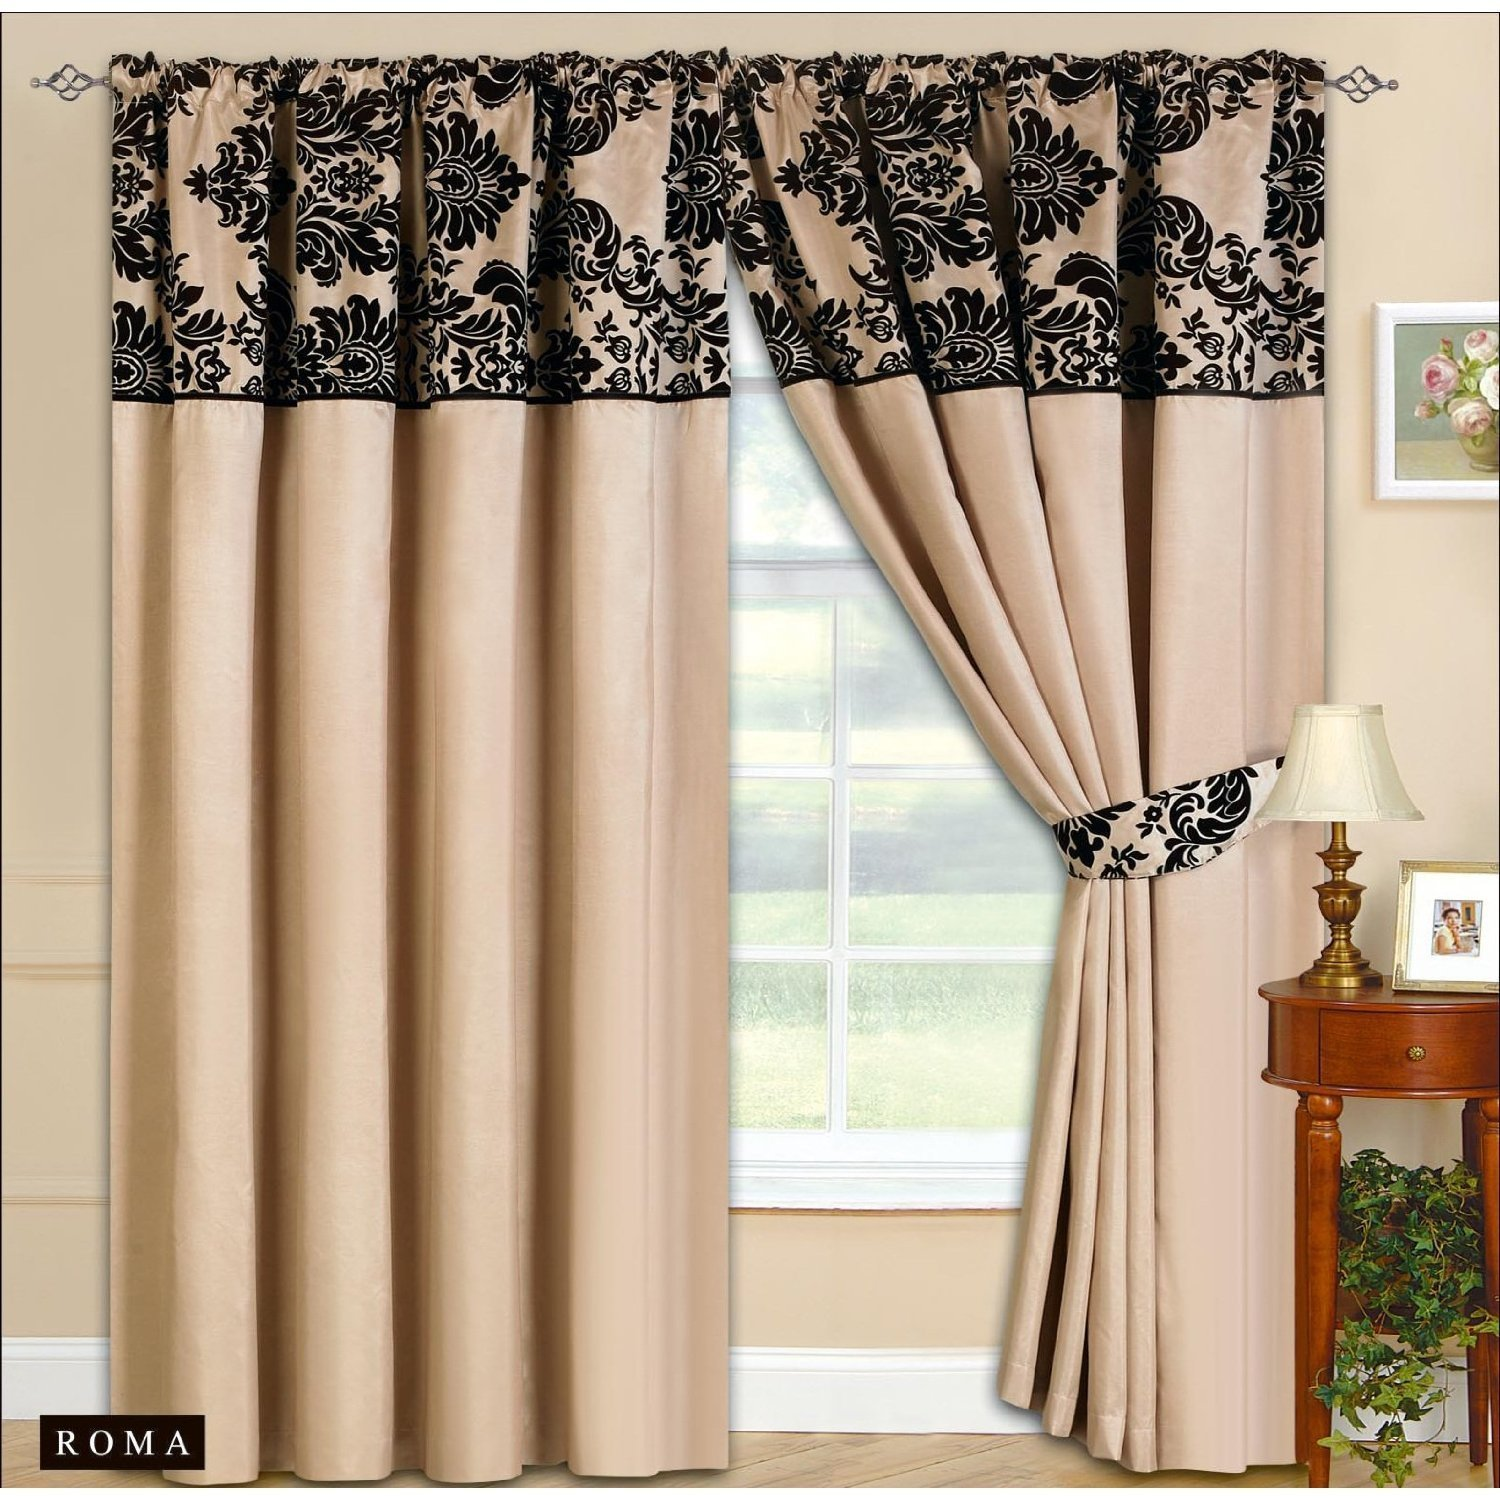 66x72 Half Flock Pencil Pleat Luxurious Pair Of Curtains With Matching Tie Backs